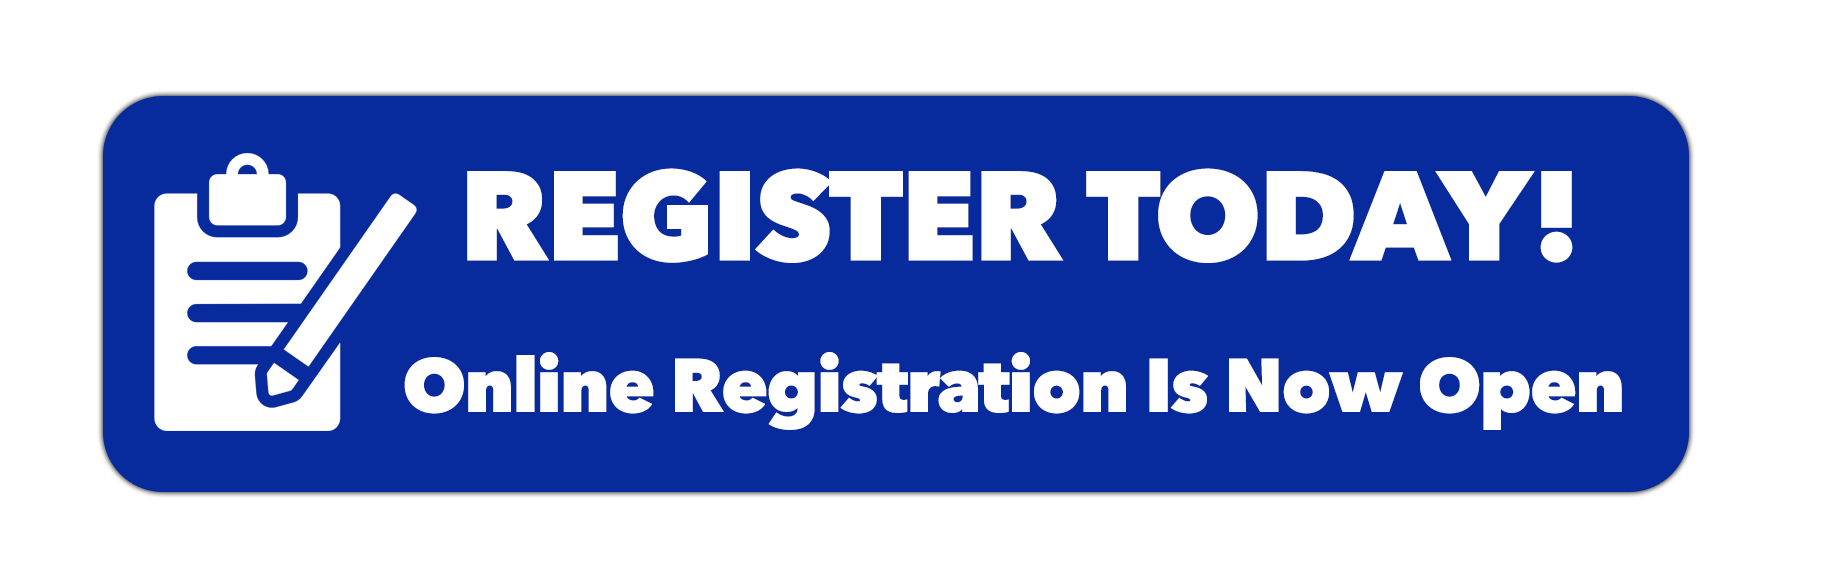 Register Today Button Blue